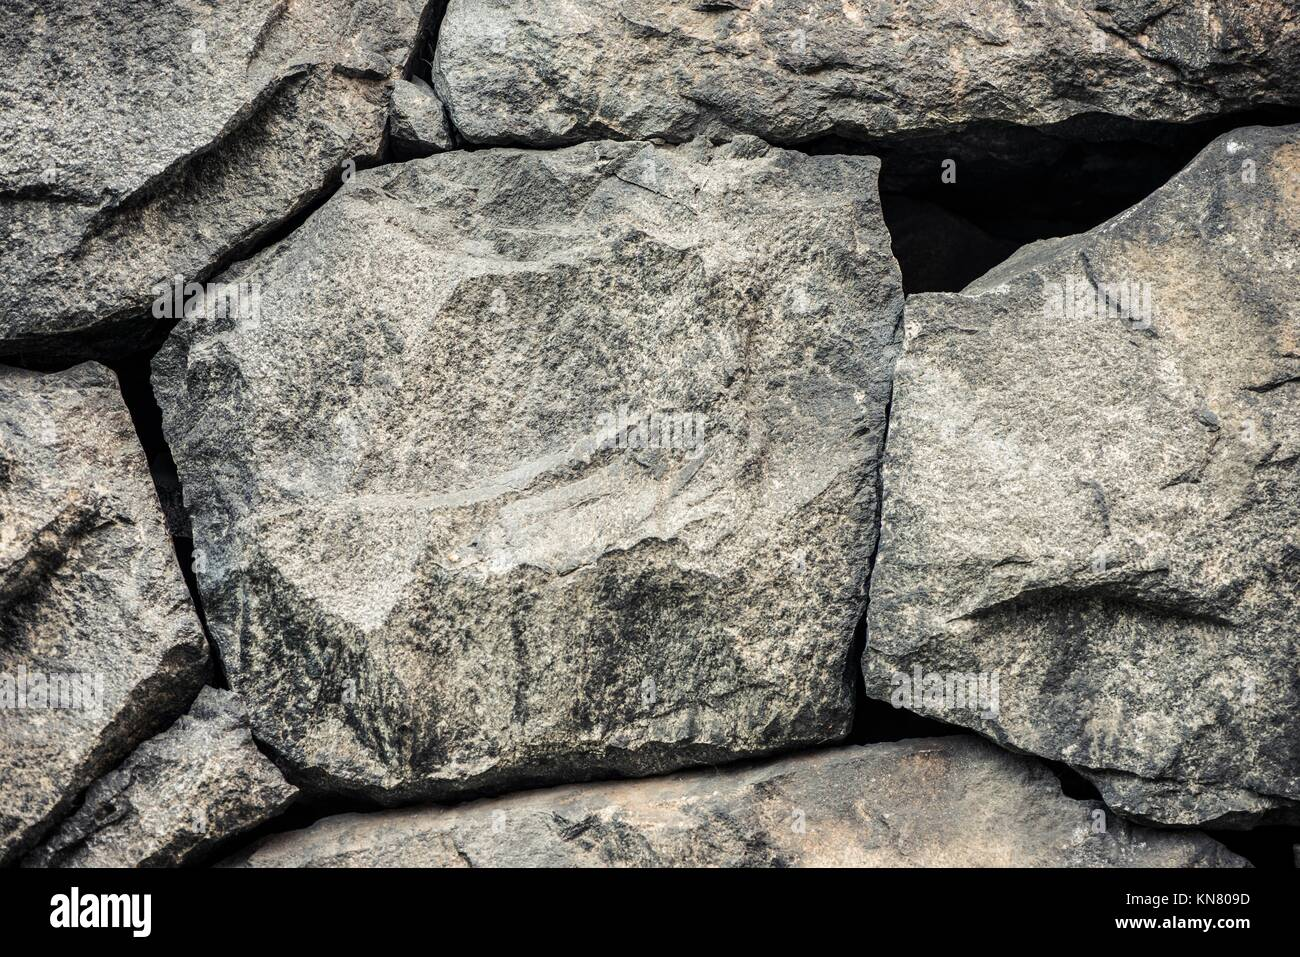 Stone background, rock wall backdrop with rough texture. Abstract, grungy and textured surface of stone material. - Stock Image